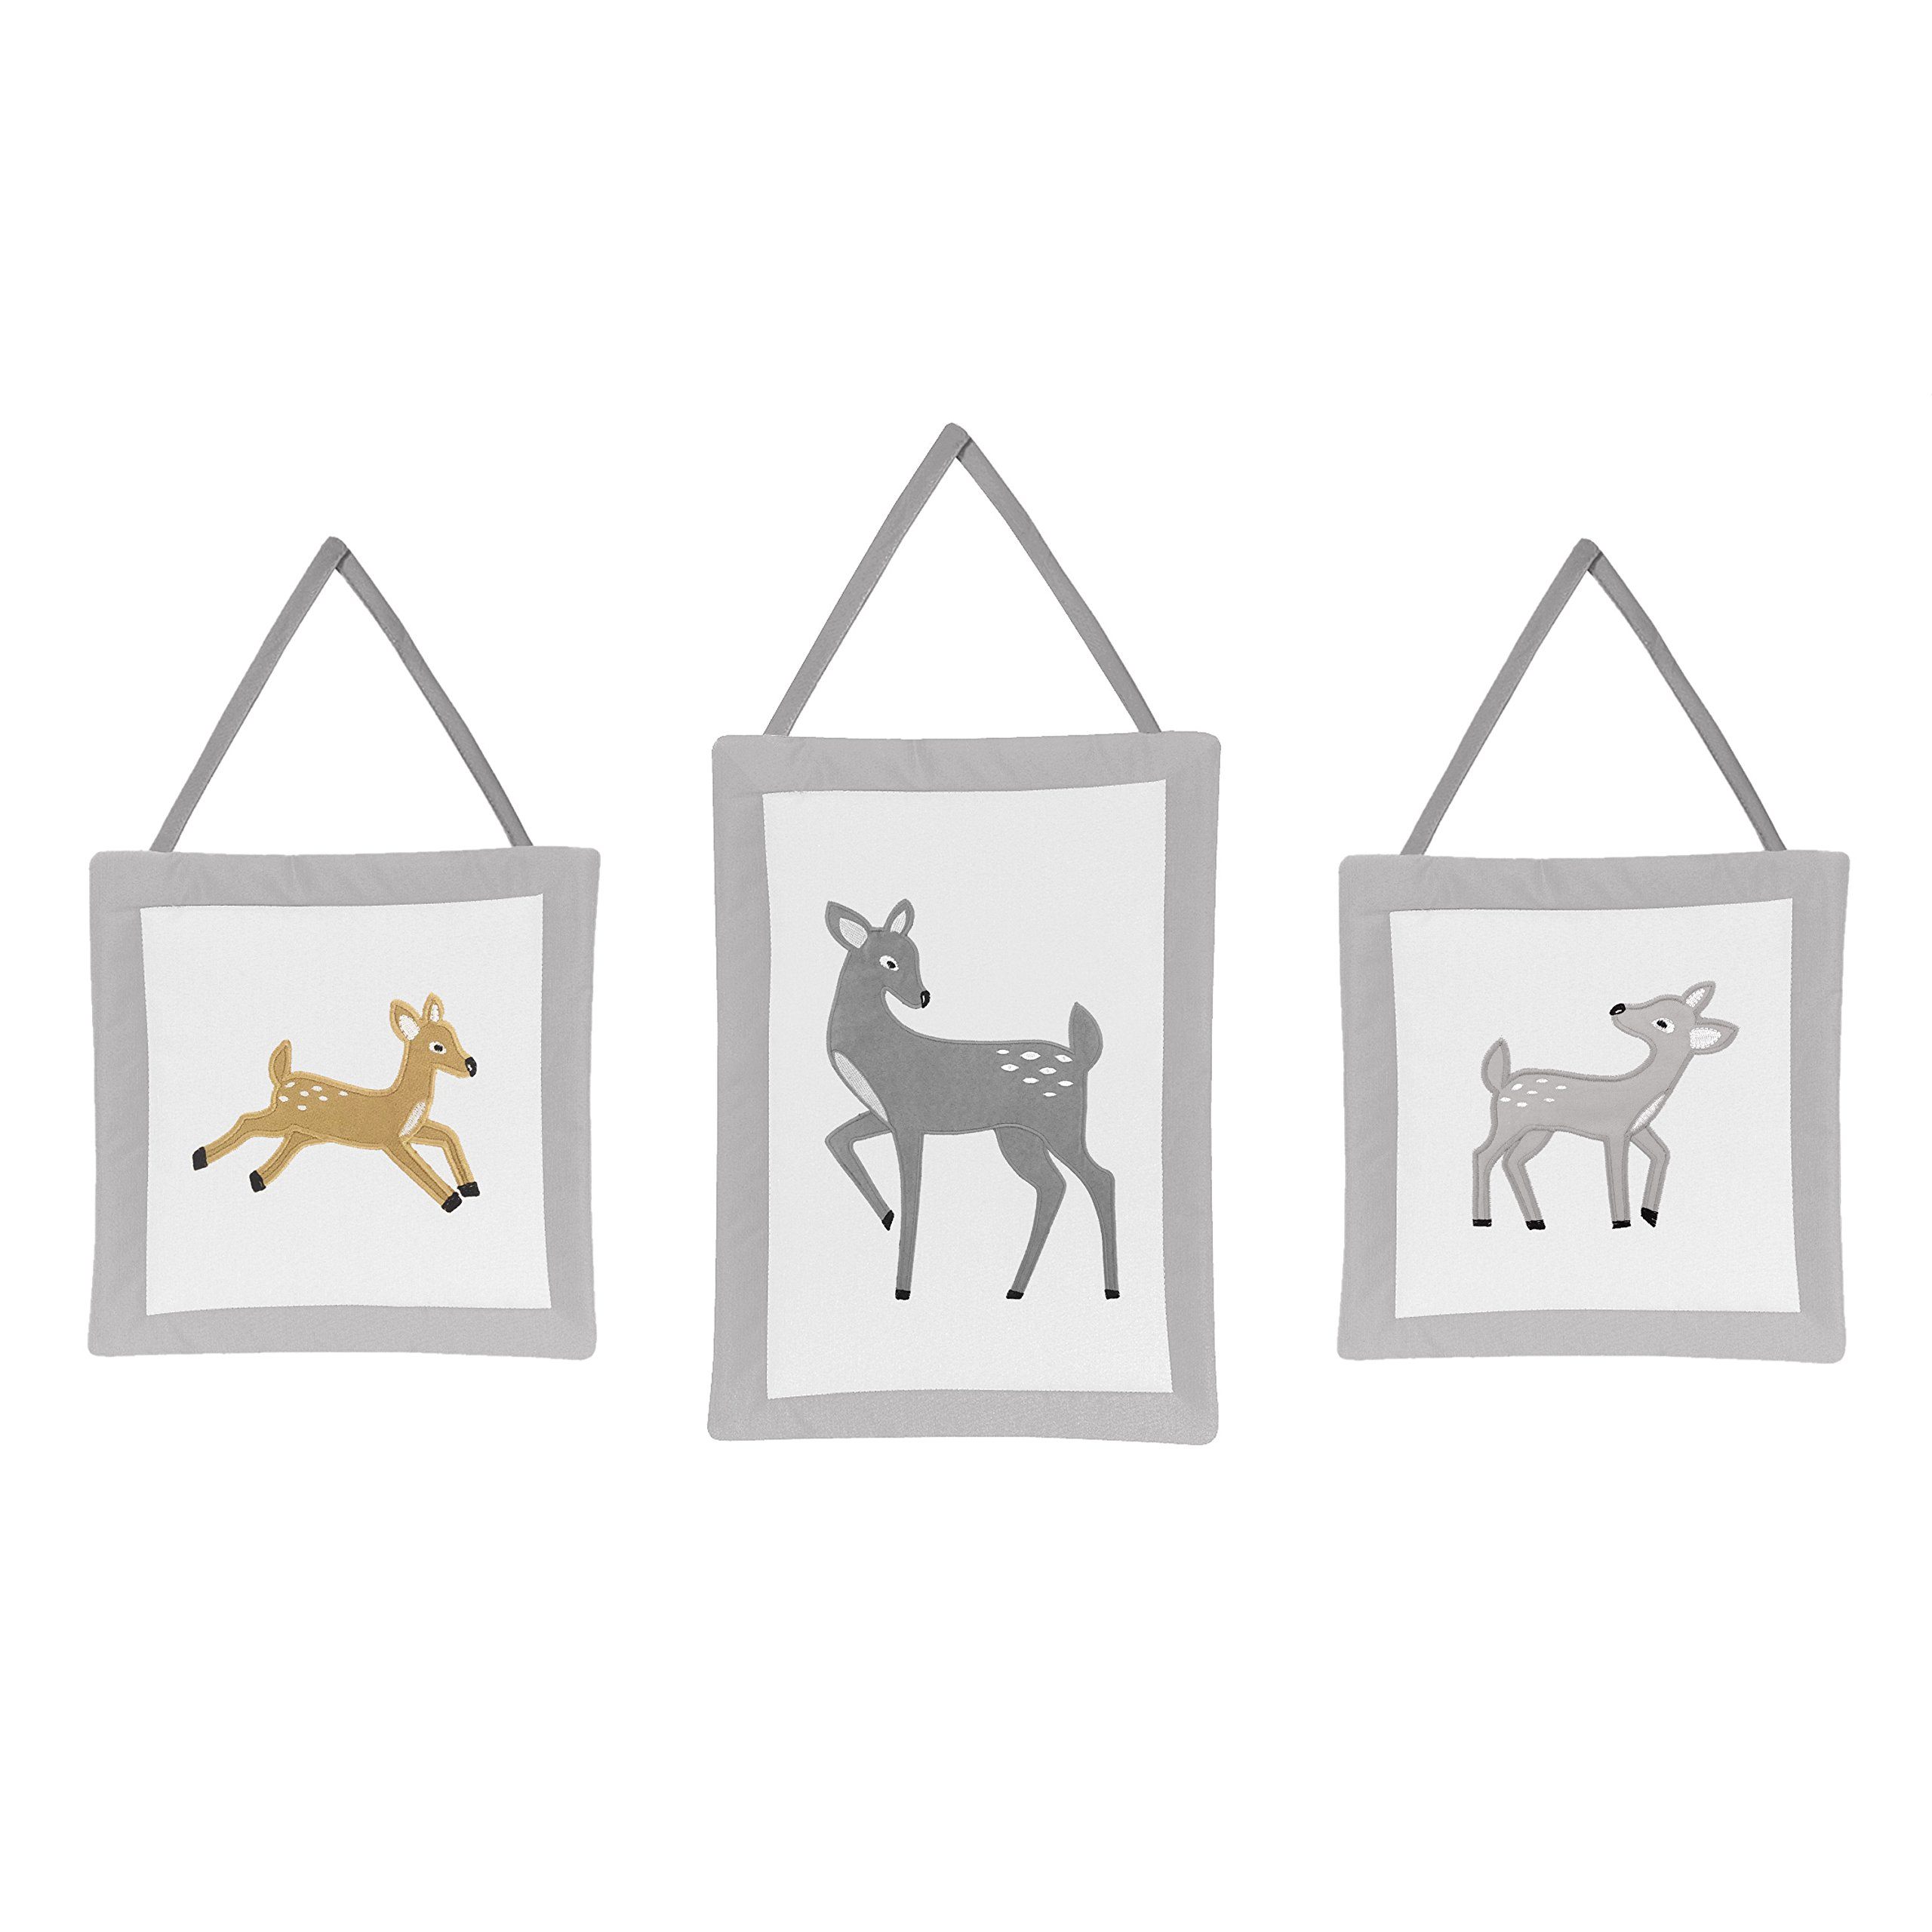 LL Three Piece Grey White Baby Deer Plush Wall Art Set, Tan Nursery Woodland Themed Hanging Decor, Gray Infant Forest Animal Wild Kids Cute Adorable Childrens Home Accent, Cotton